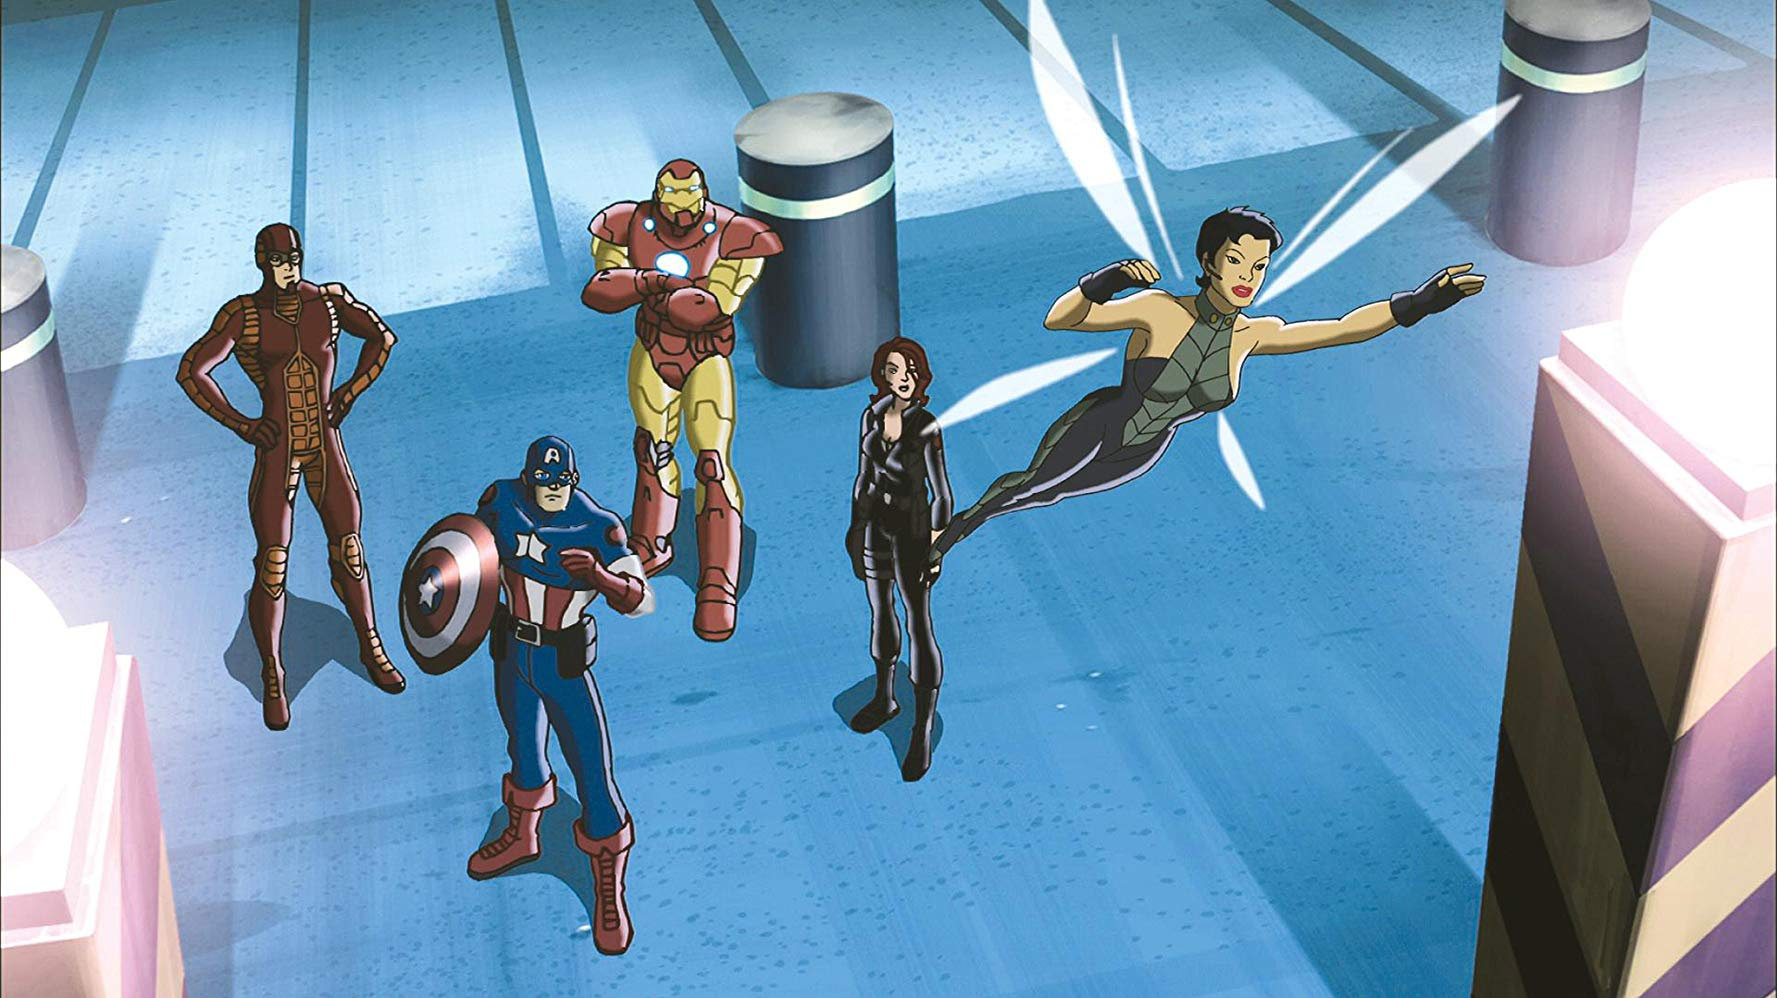 Avengers line-up - (l to r) Ant Man, Captain America, Iron Man, Black Widow and The Wasp in Ultimate Avengers (2006)